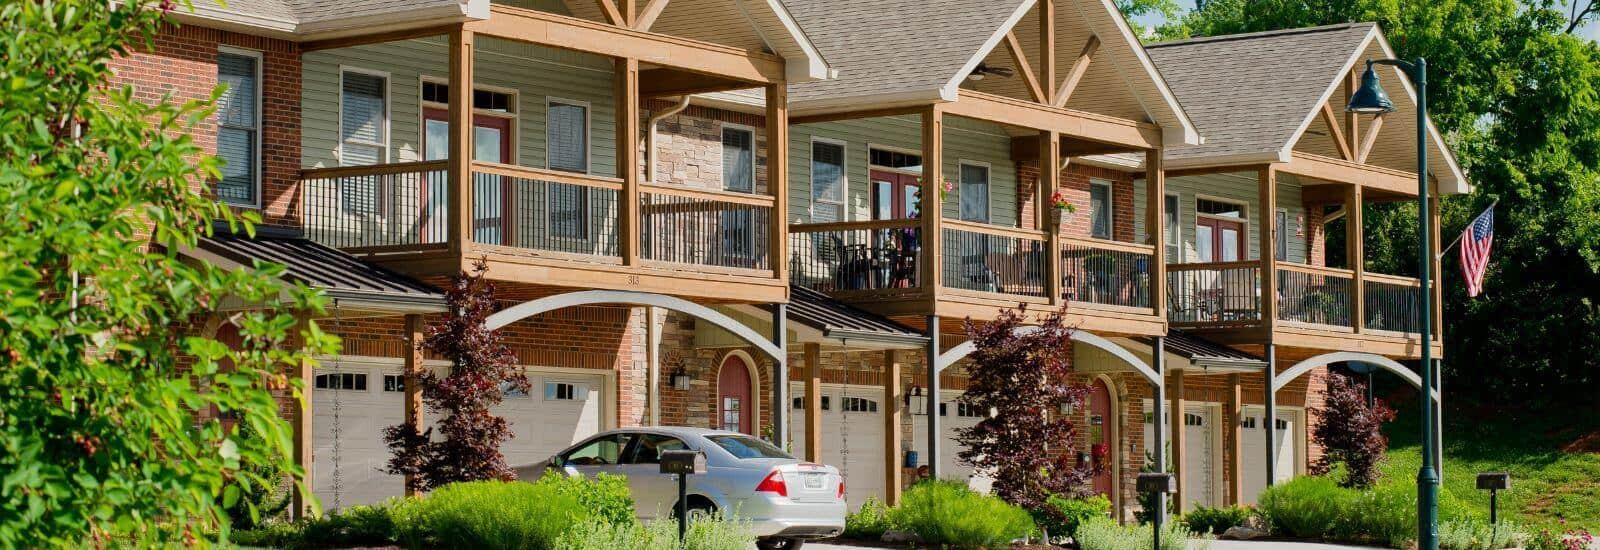 Tremont Townhomes at Asbury Place Maryville